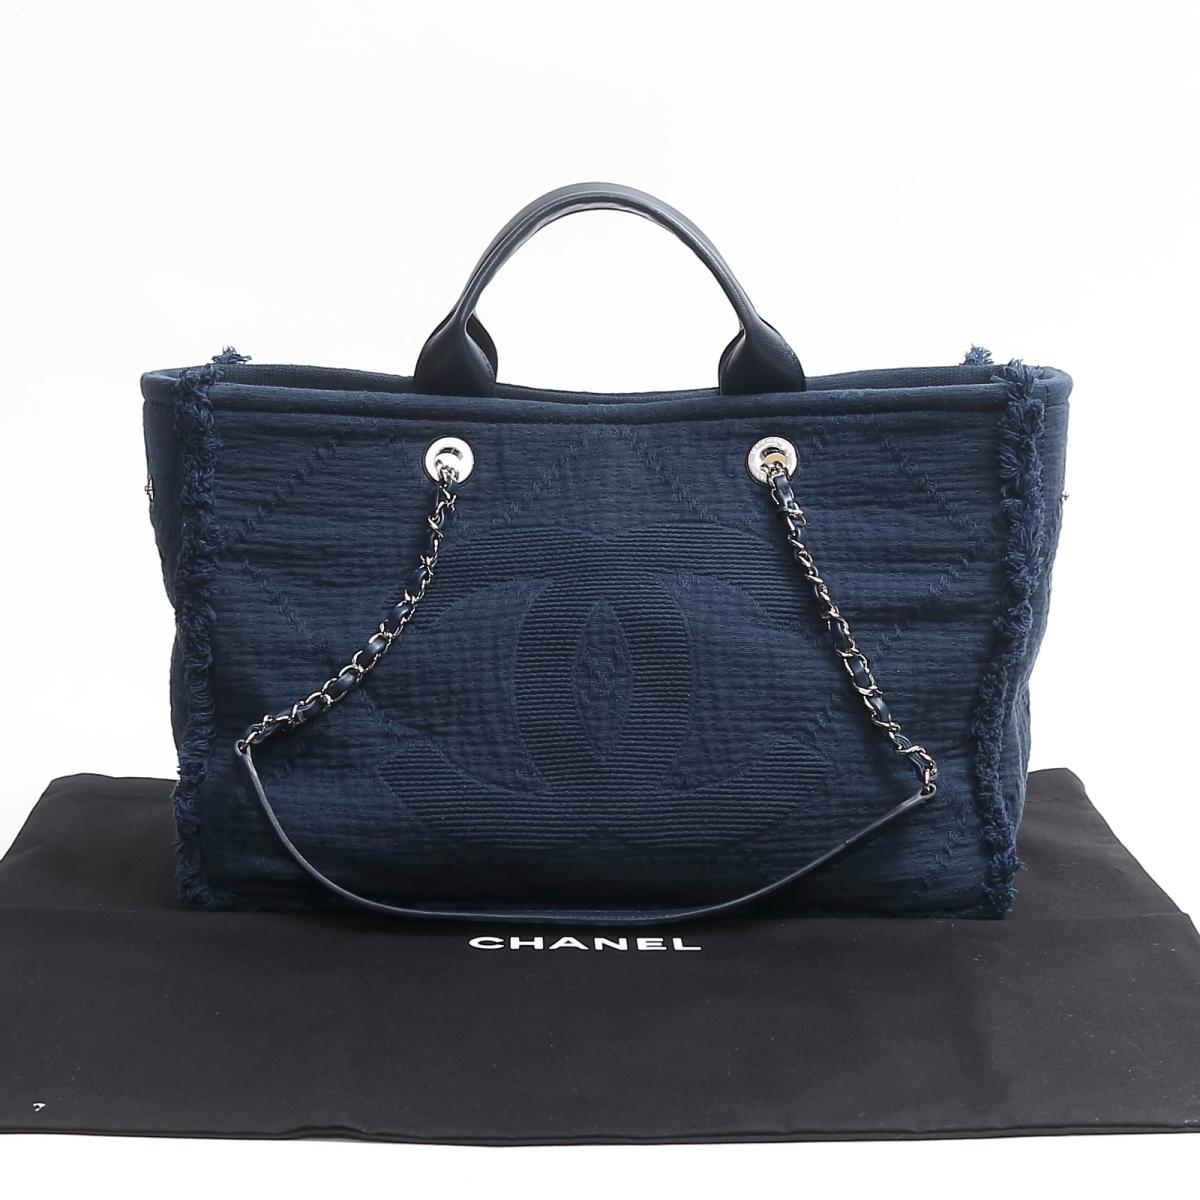 0ab5f4ad361c Auth CHANEL Large shopping bag 2WAY tote bag A57167 Canvas x Leather Blue |  BRANDOFF Ginza/TOKYO/Japan